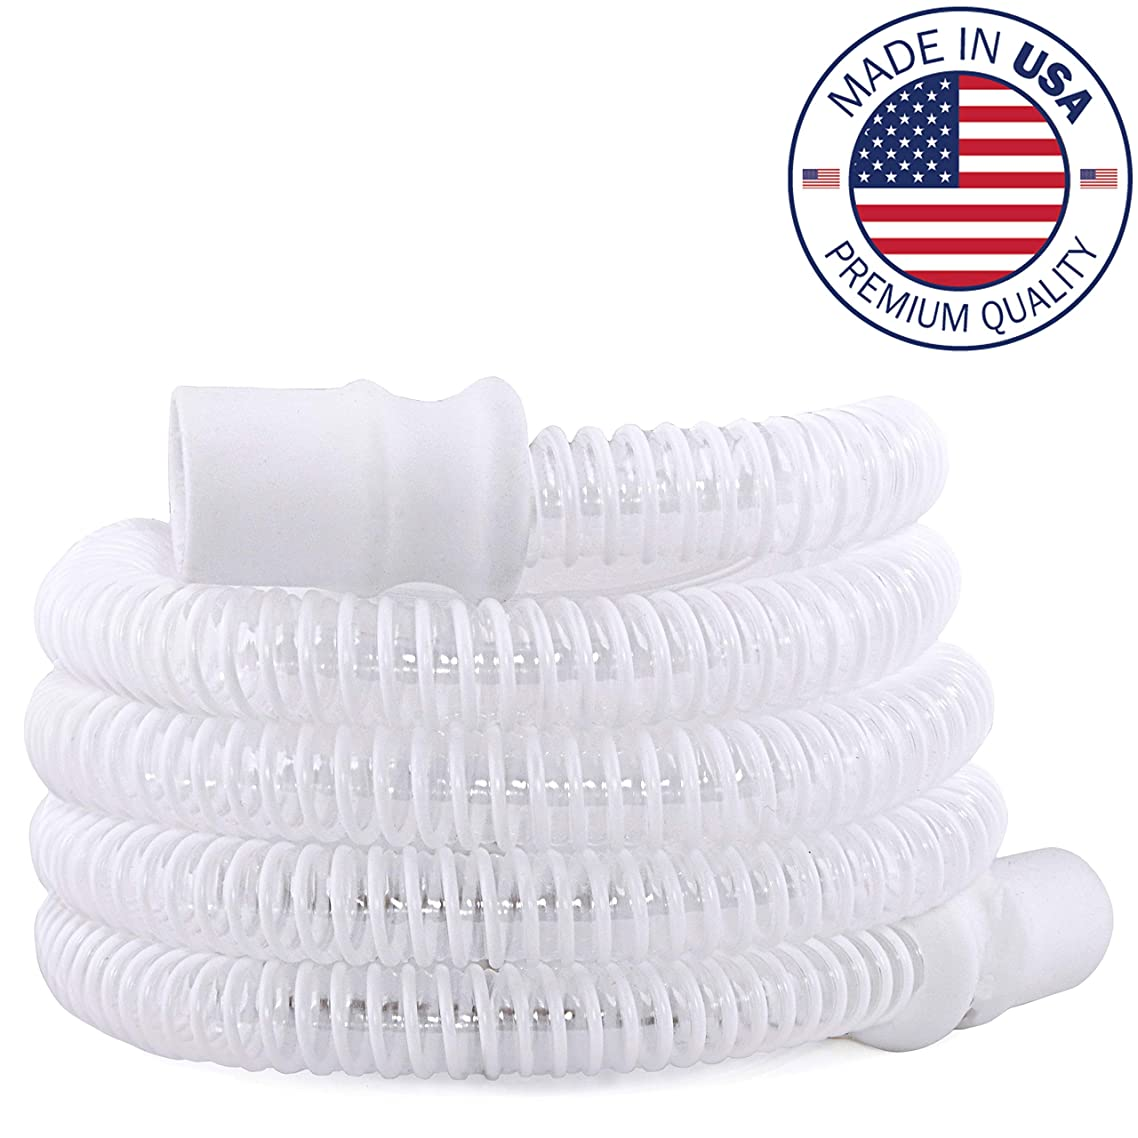 Made in USA, High Performance CPAP and BIPAP Tubing Hose with Ergonomic Cuff, by Vaunn Medical